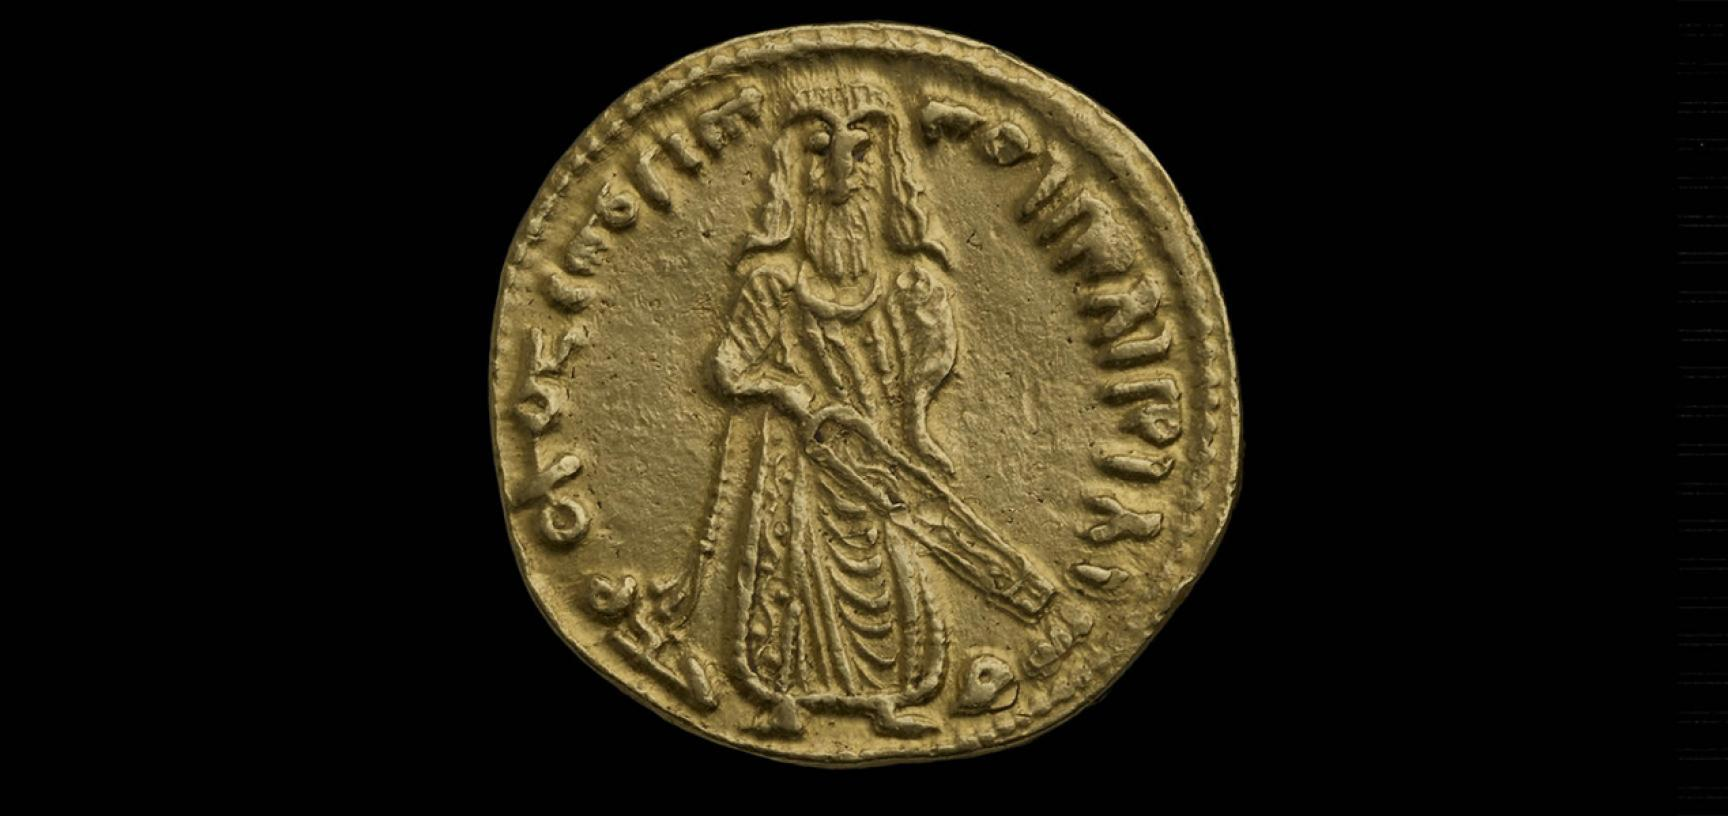 Standing Caliph Dinar, AD 696-697